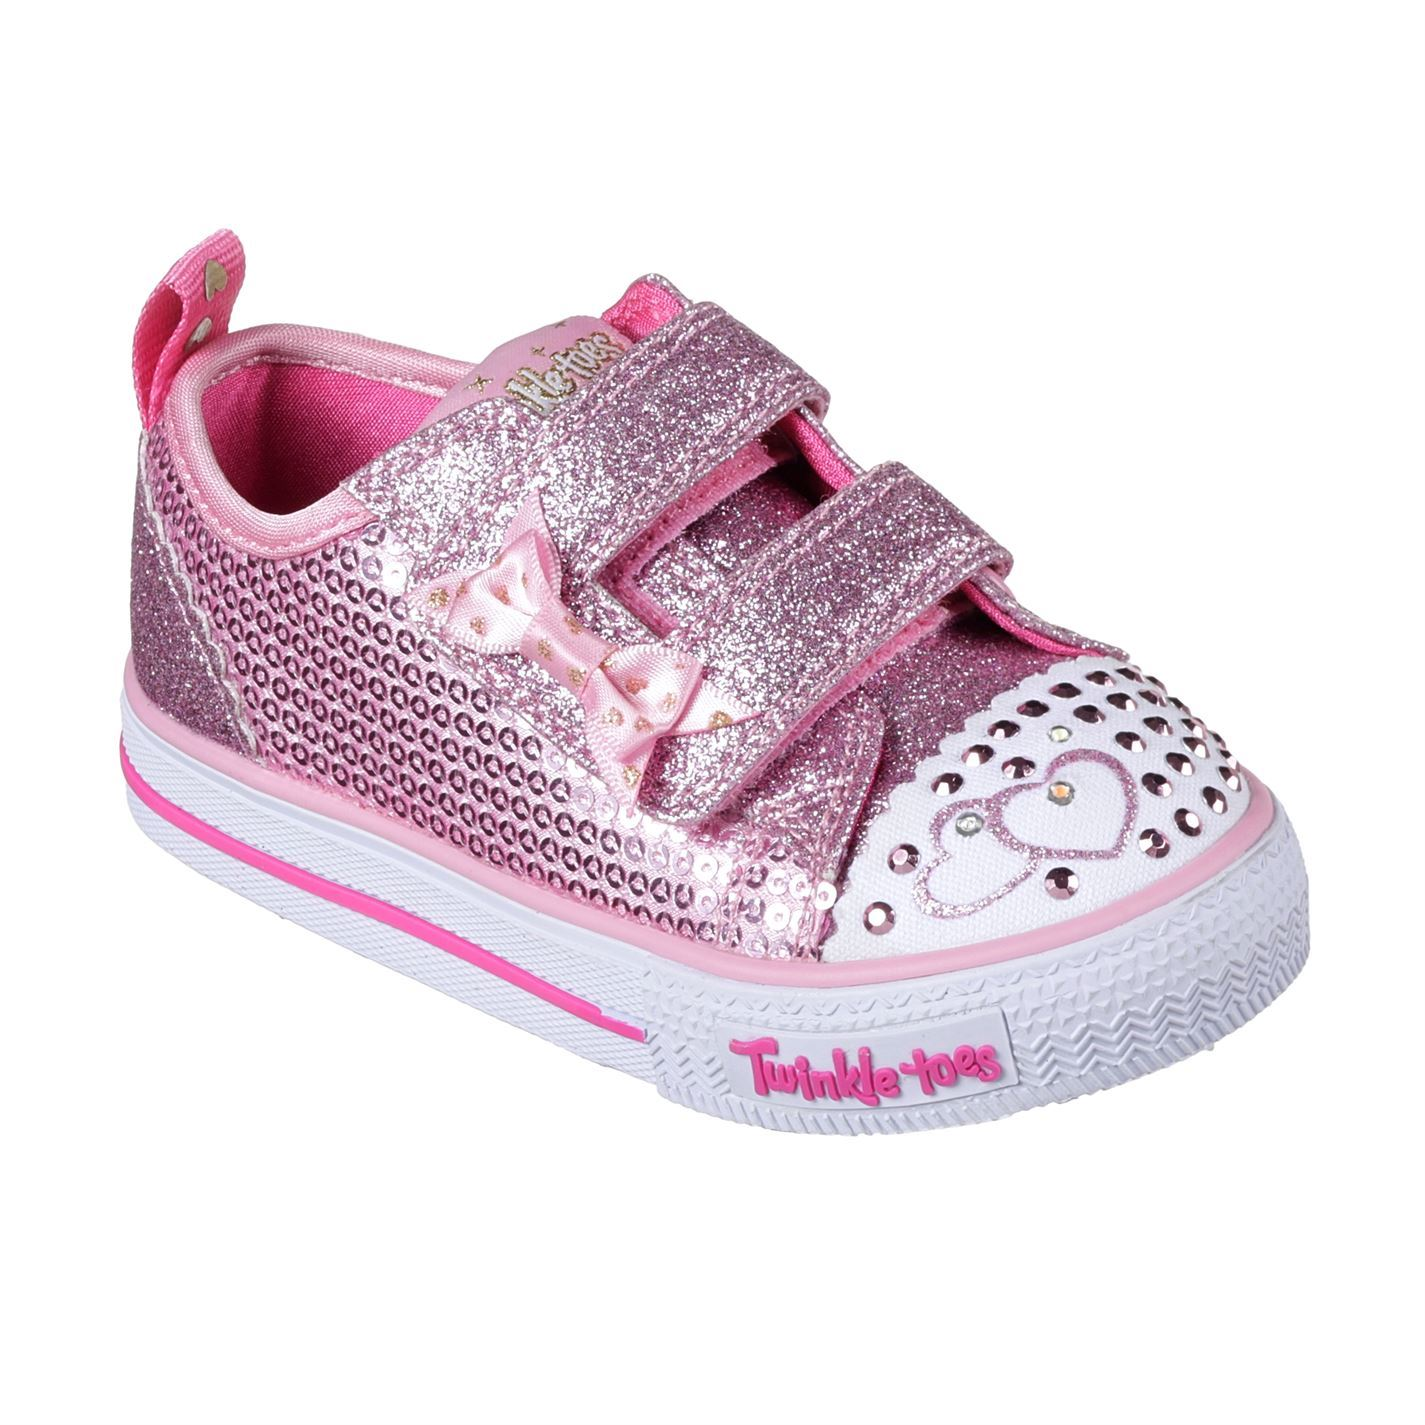 24702f7fde77 Skechers Twinkle Toes Itsy Bitsy Shoes Infant Girls Trainers ...